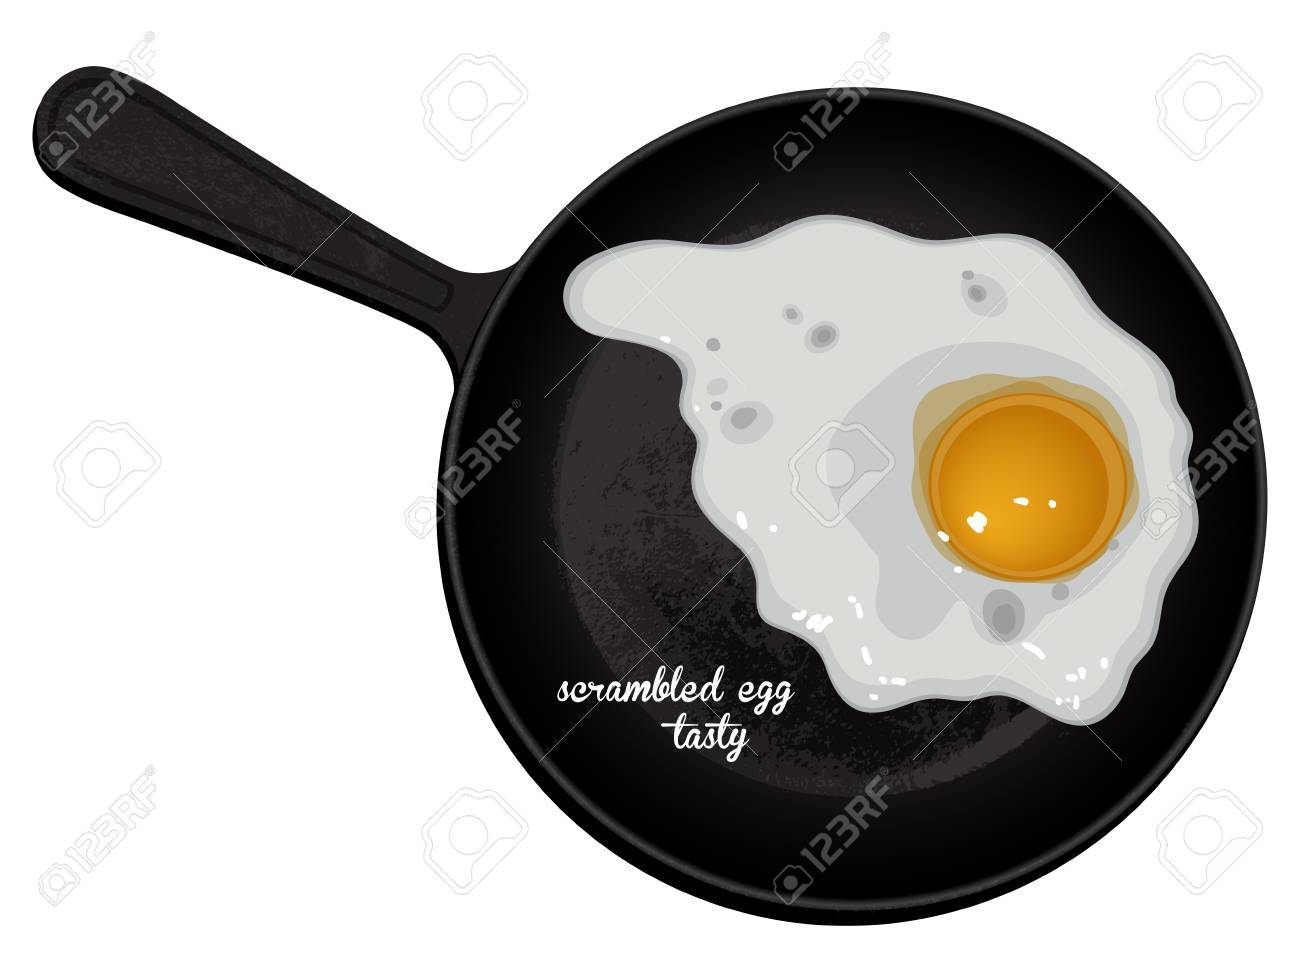 fried egg on a black background, freehand drawing - 60238039